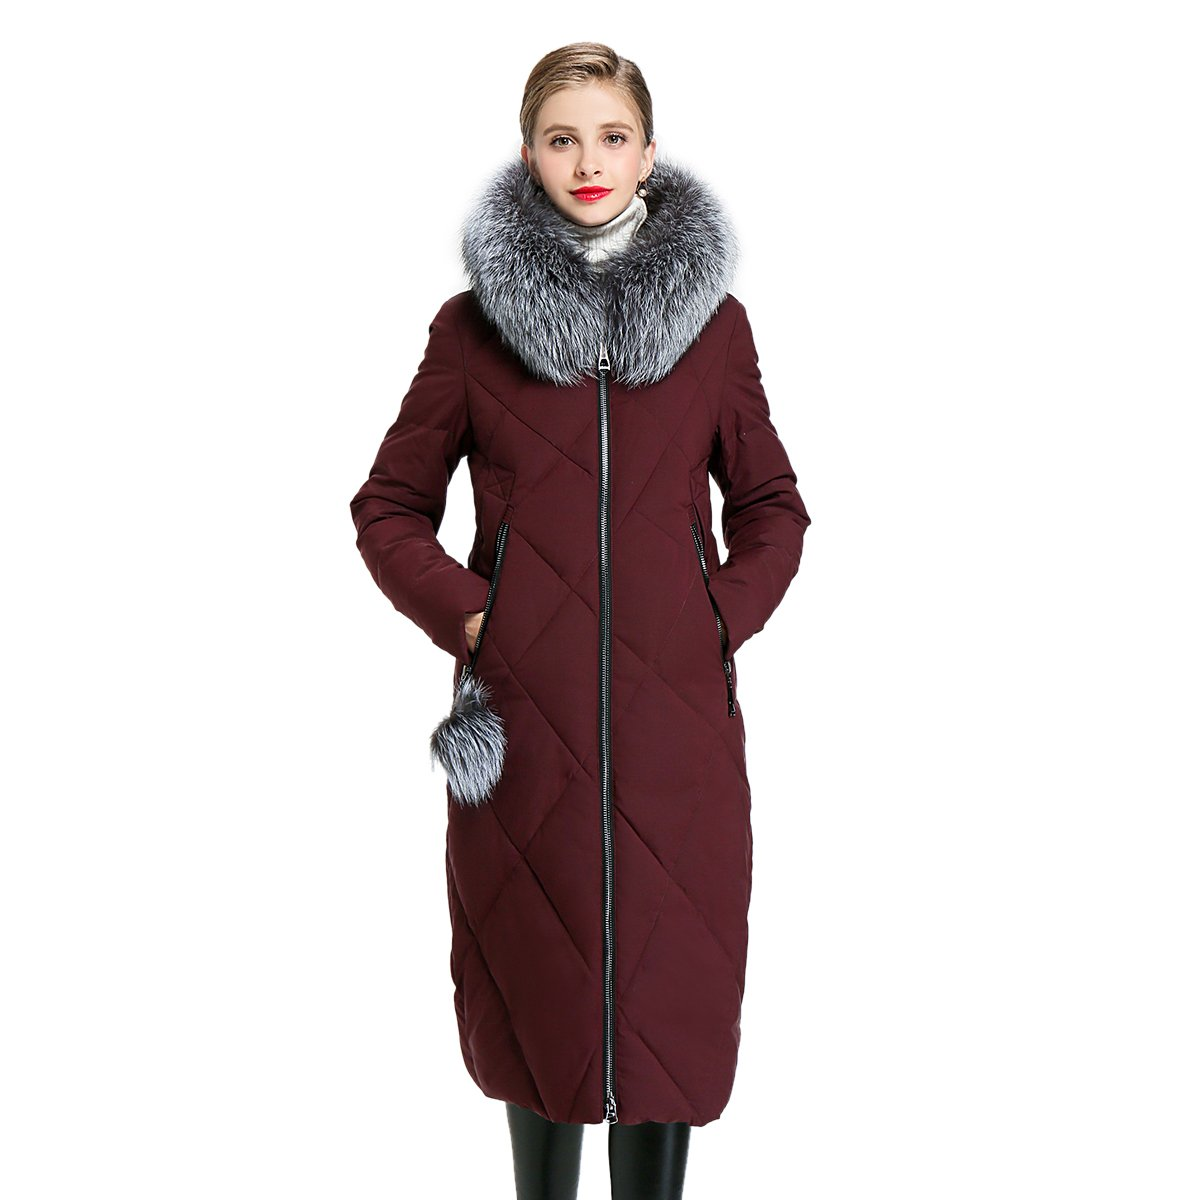 Womens Winter Hooded Thick Coat Parka Style Jackets Fashion Fur Collar Coat Y170012 by EURASIA